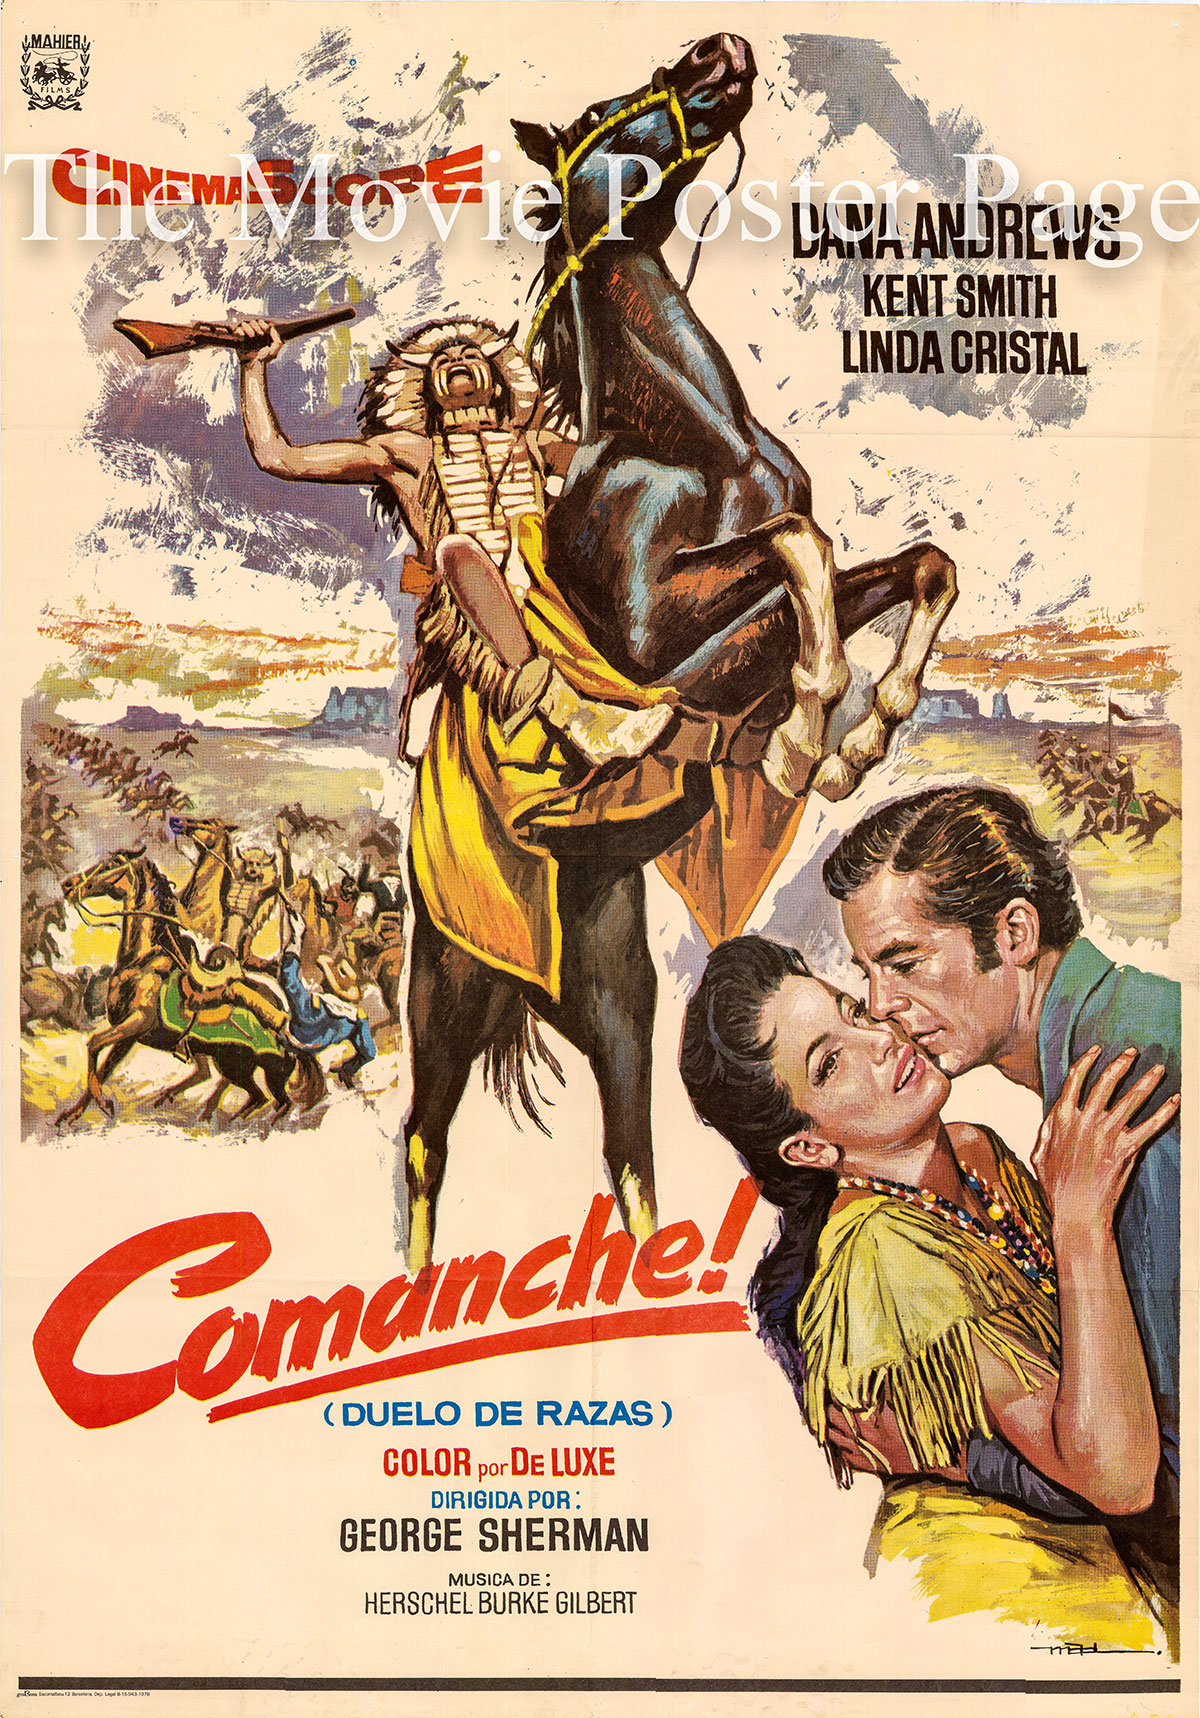 Pictured is a Spanish promotional poster for the 1956 George Sherman film Commanche starring Dana Andrews.